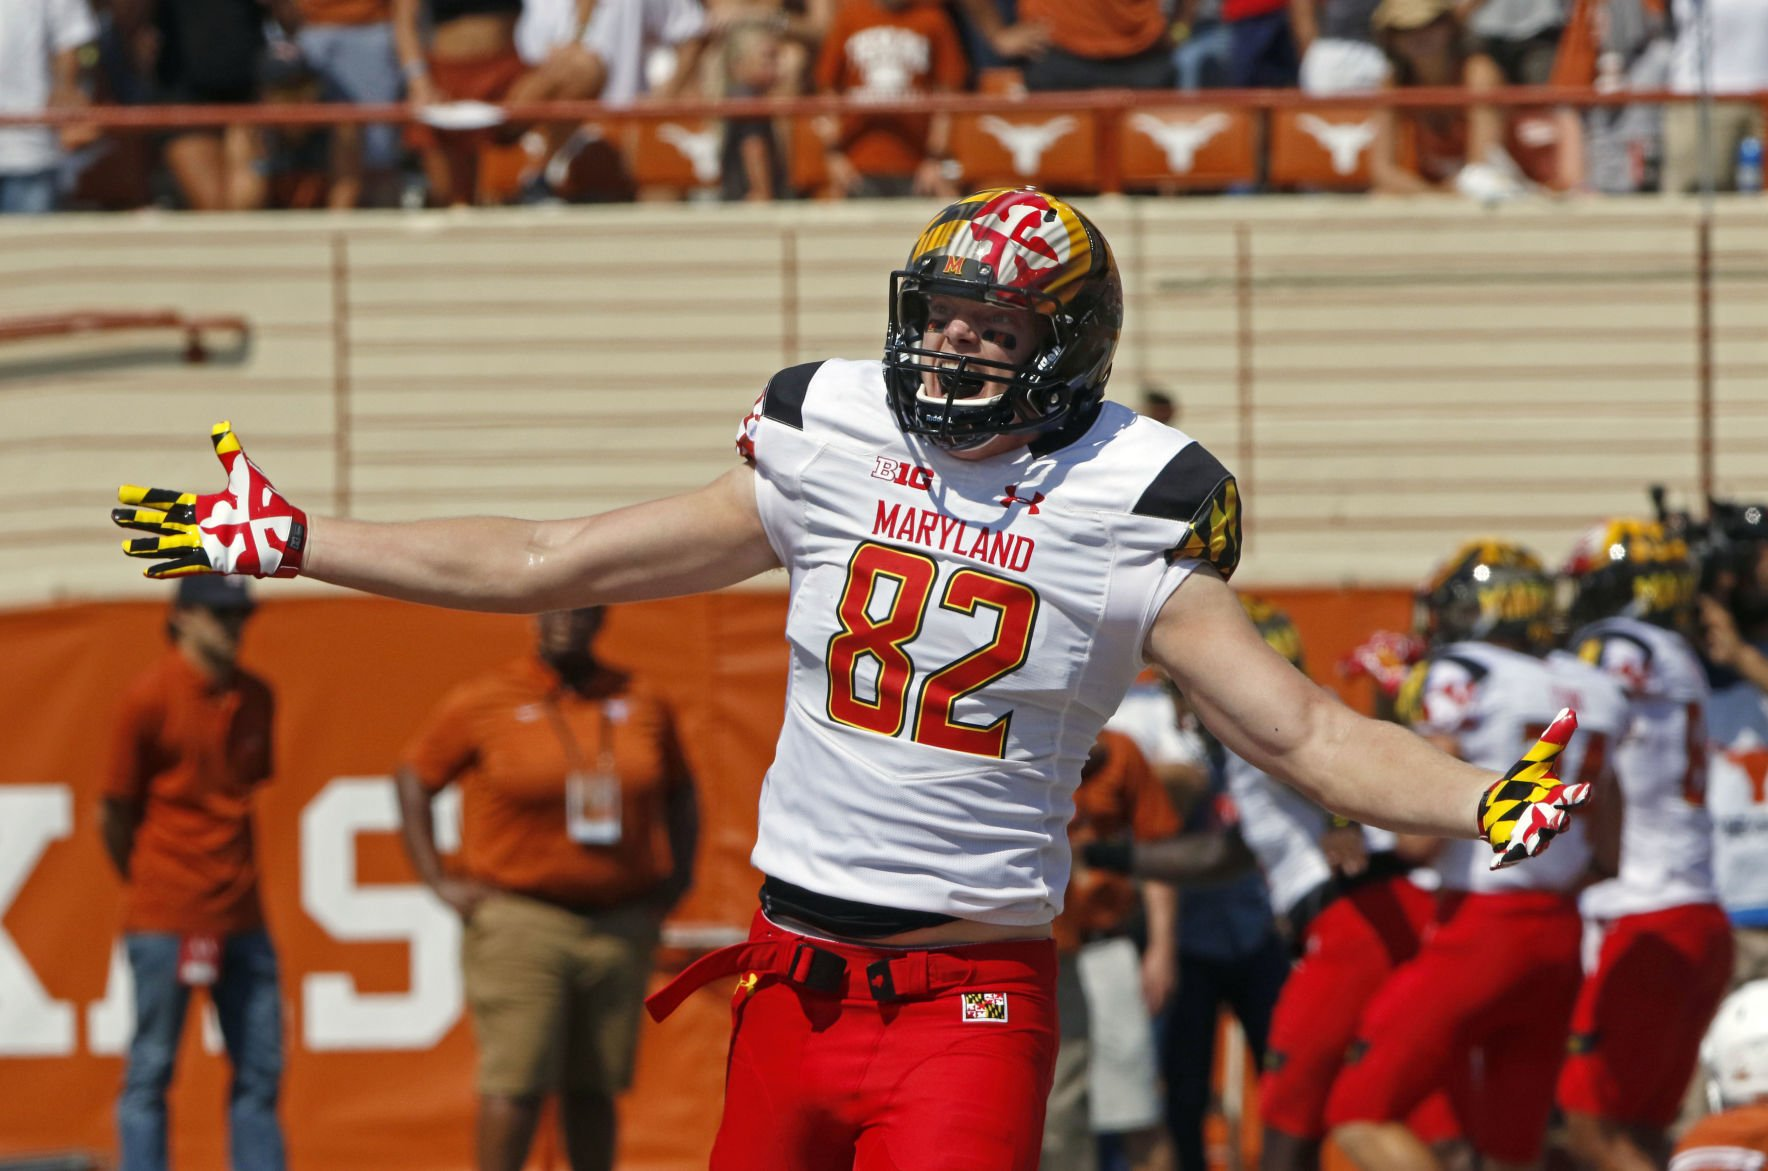 Maryland: Longhorns score 3 non-offensive TDs, still lose, fans boo